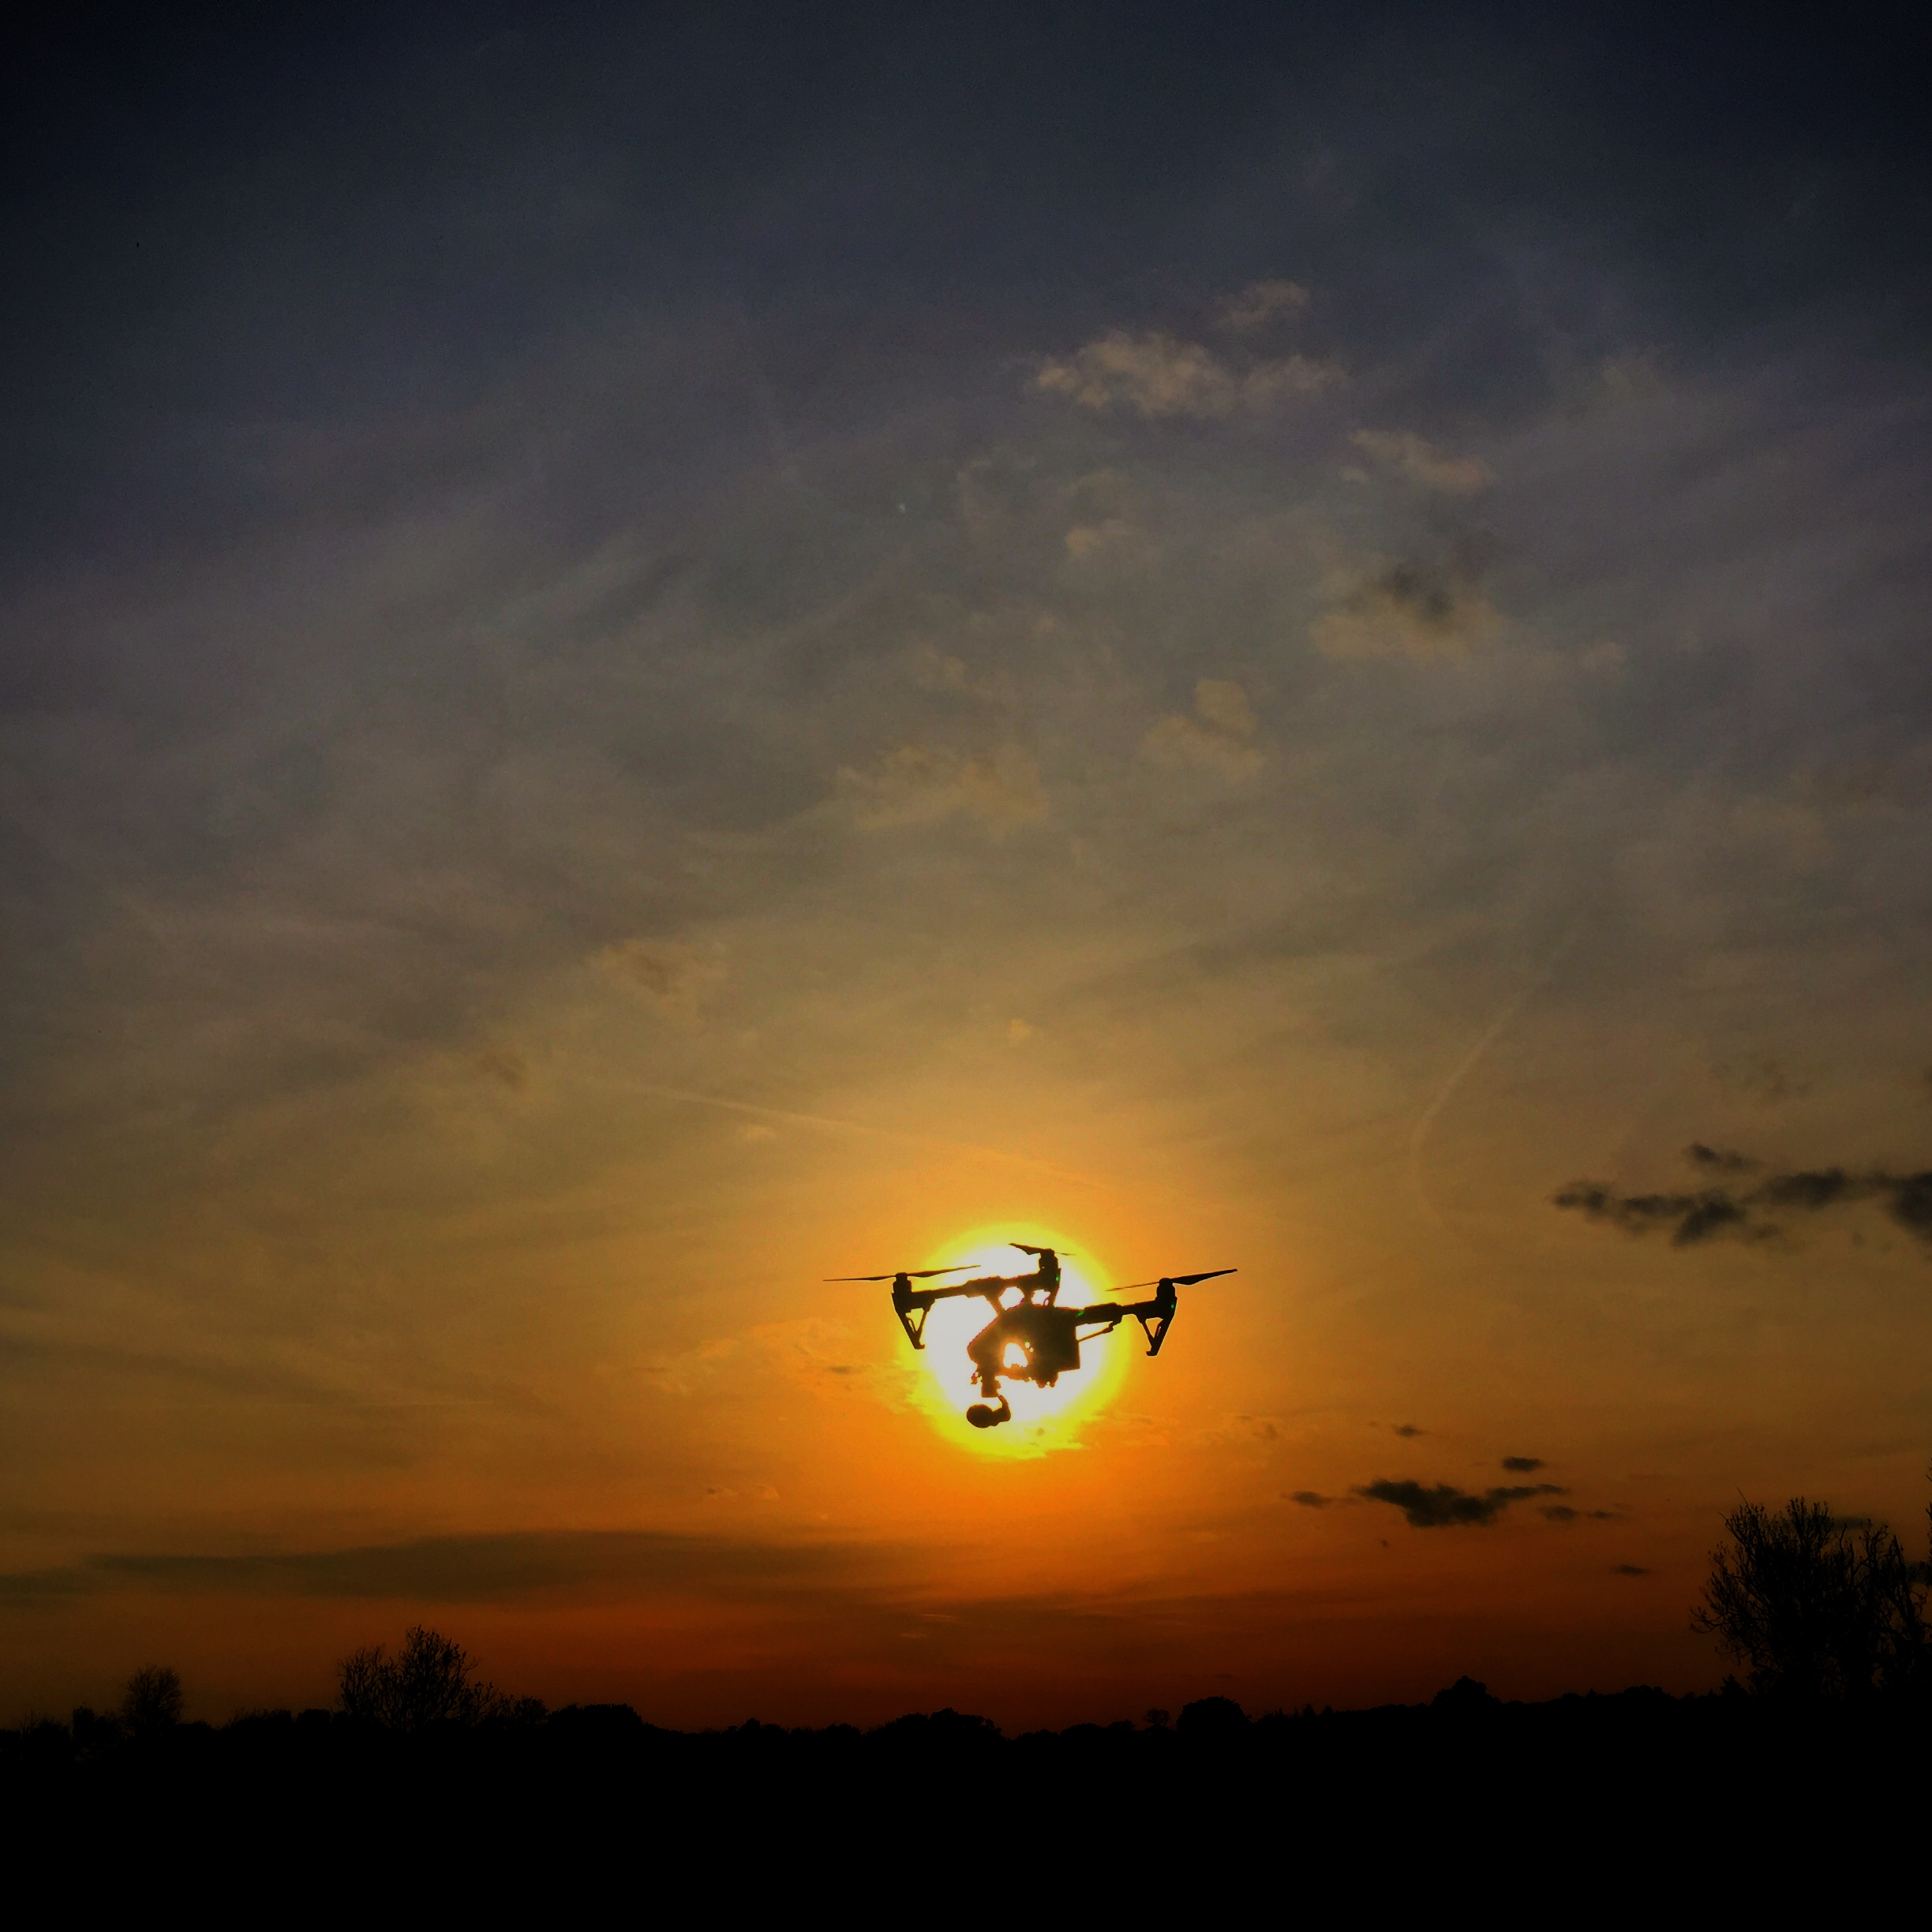 Inspire 1 coming in for a battery change during a sunset shoot